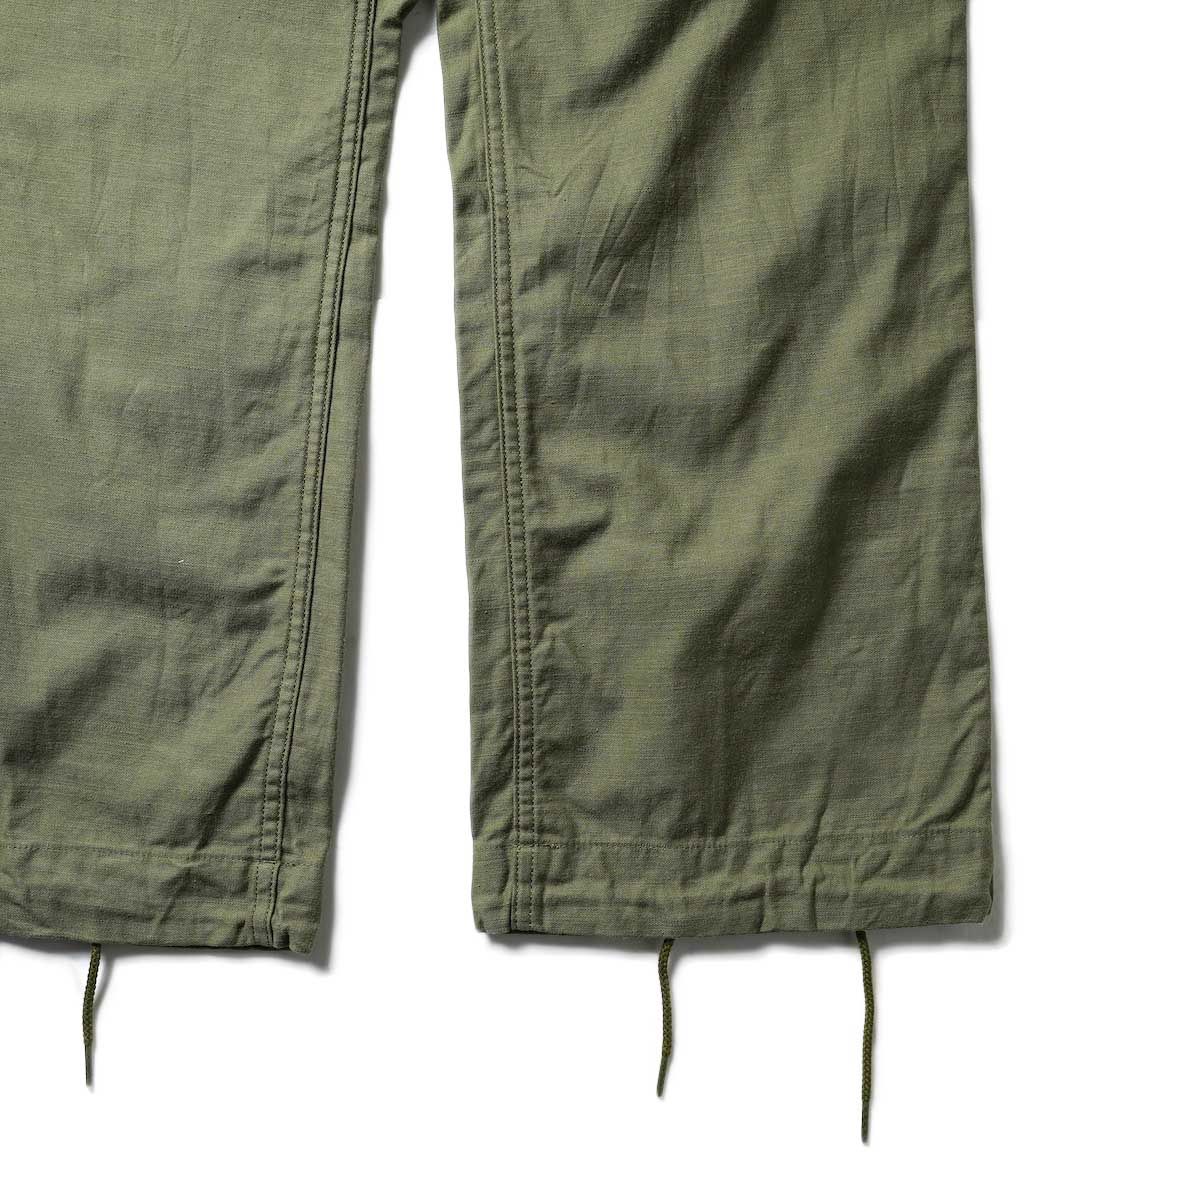 Needles / STRING FATIGUE PANT - BACK SATEEN (Olive)裾